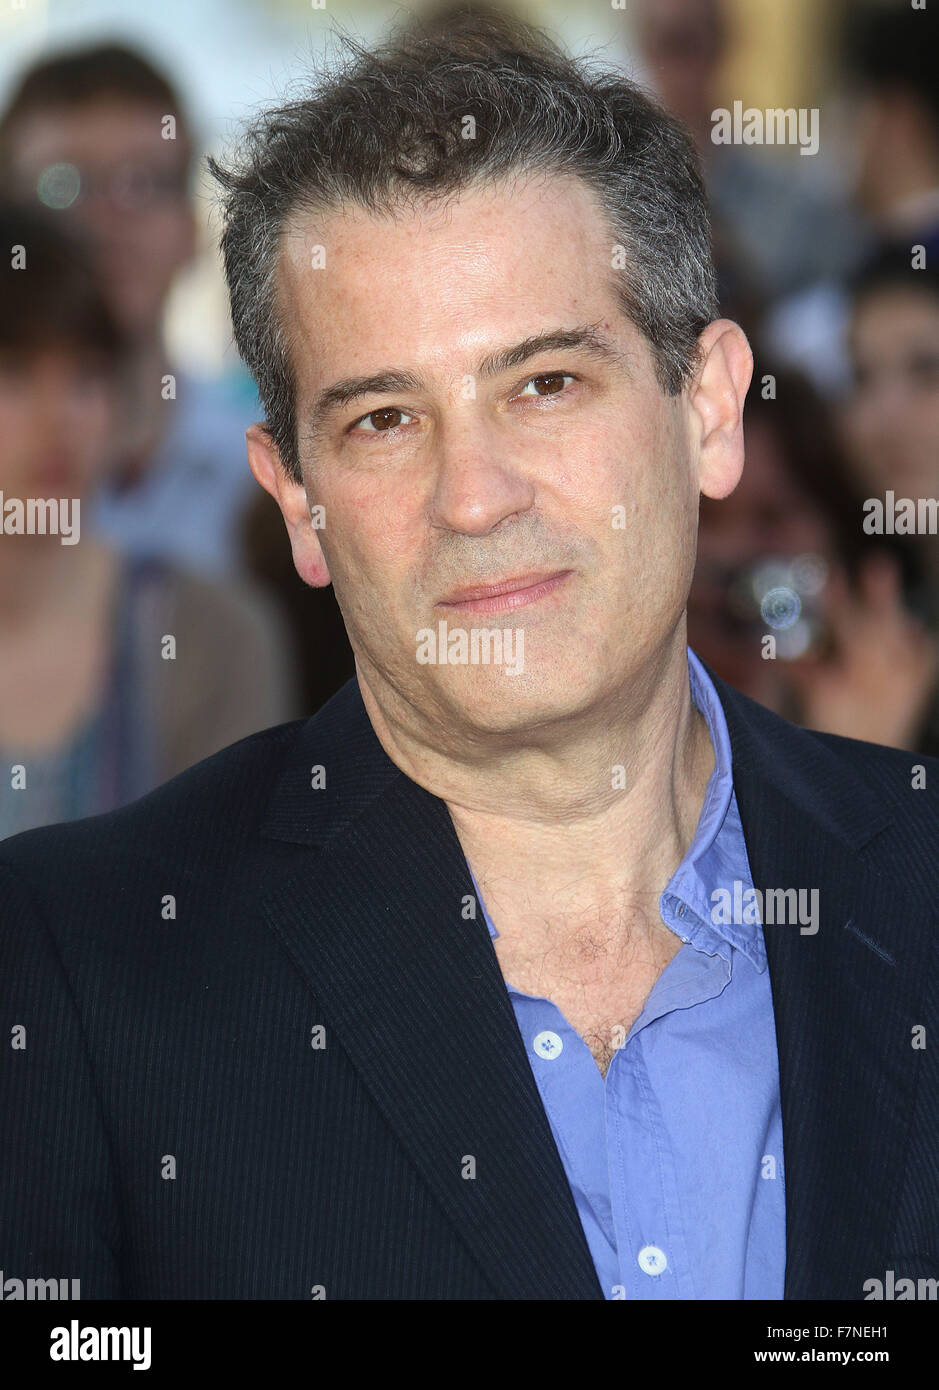 Apr 15, 2015 - London, England, UK - Allon Reich attending Far From the Madding Crowd World Premiere, BFI Southbank - Stock Image